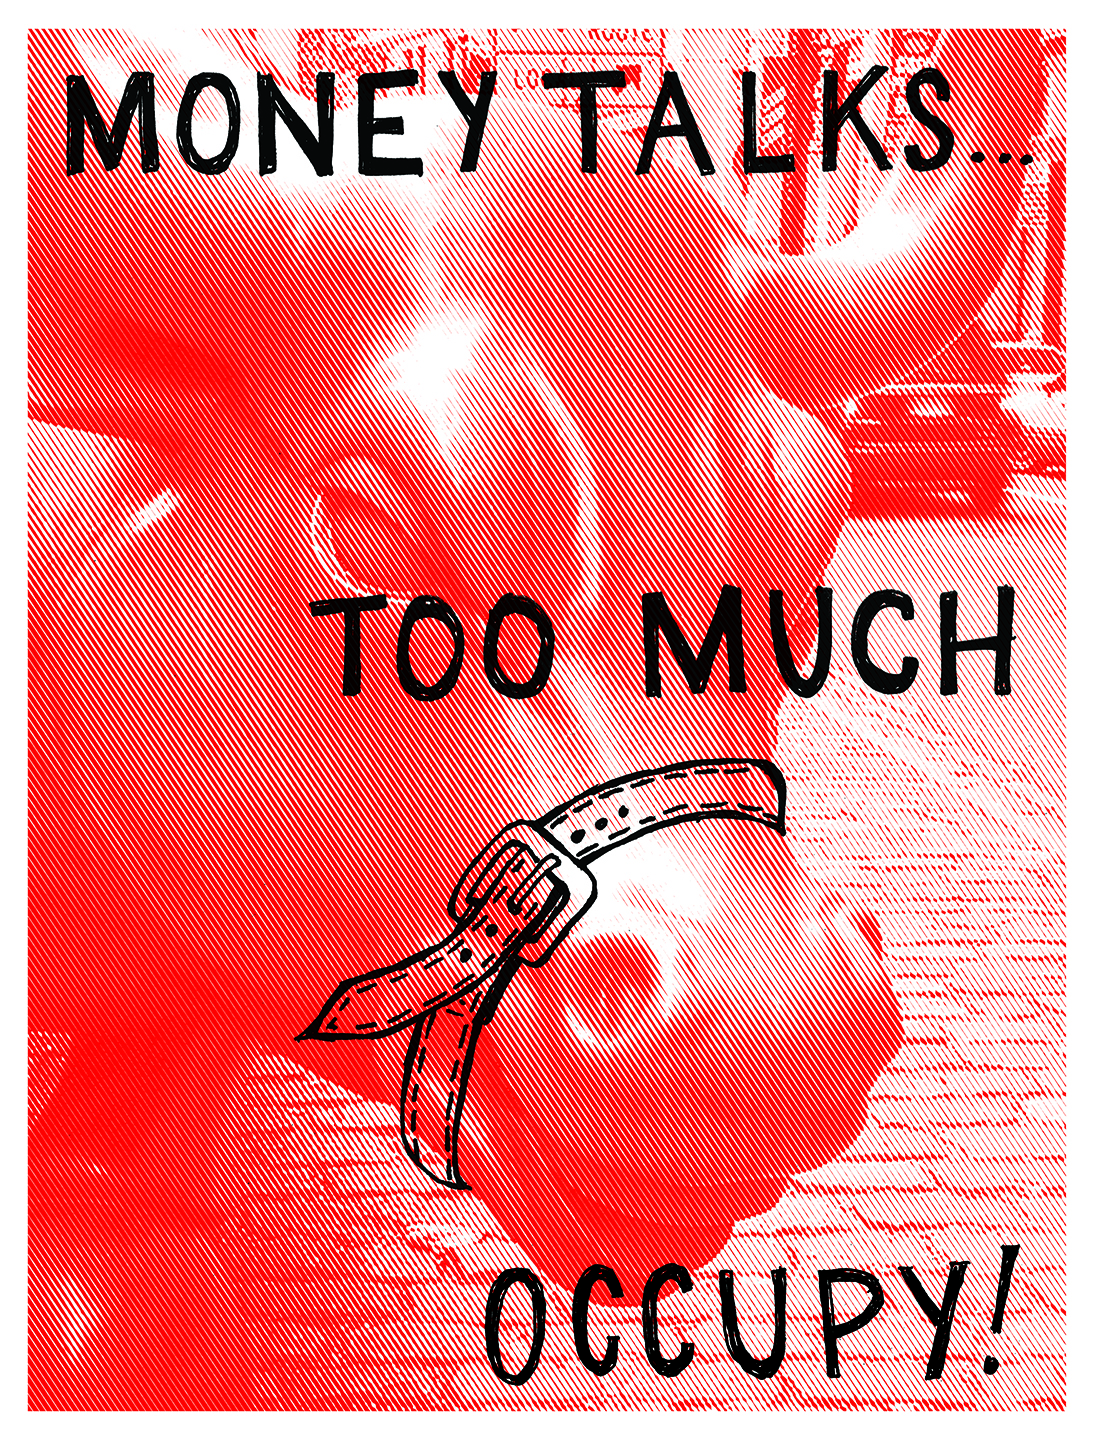 "A red-and-white photograph of the sculpture ""Charging Bull,"" located at Bowling Green Park in New York City, with a belt drawn around its mouth. Black text is overlaid reading ""Money talks...too much. Occupy!"""